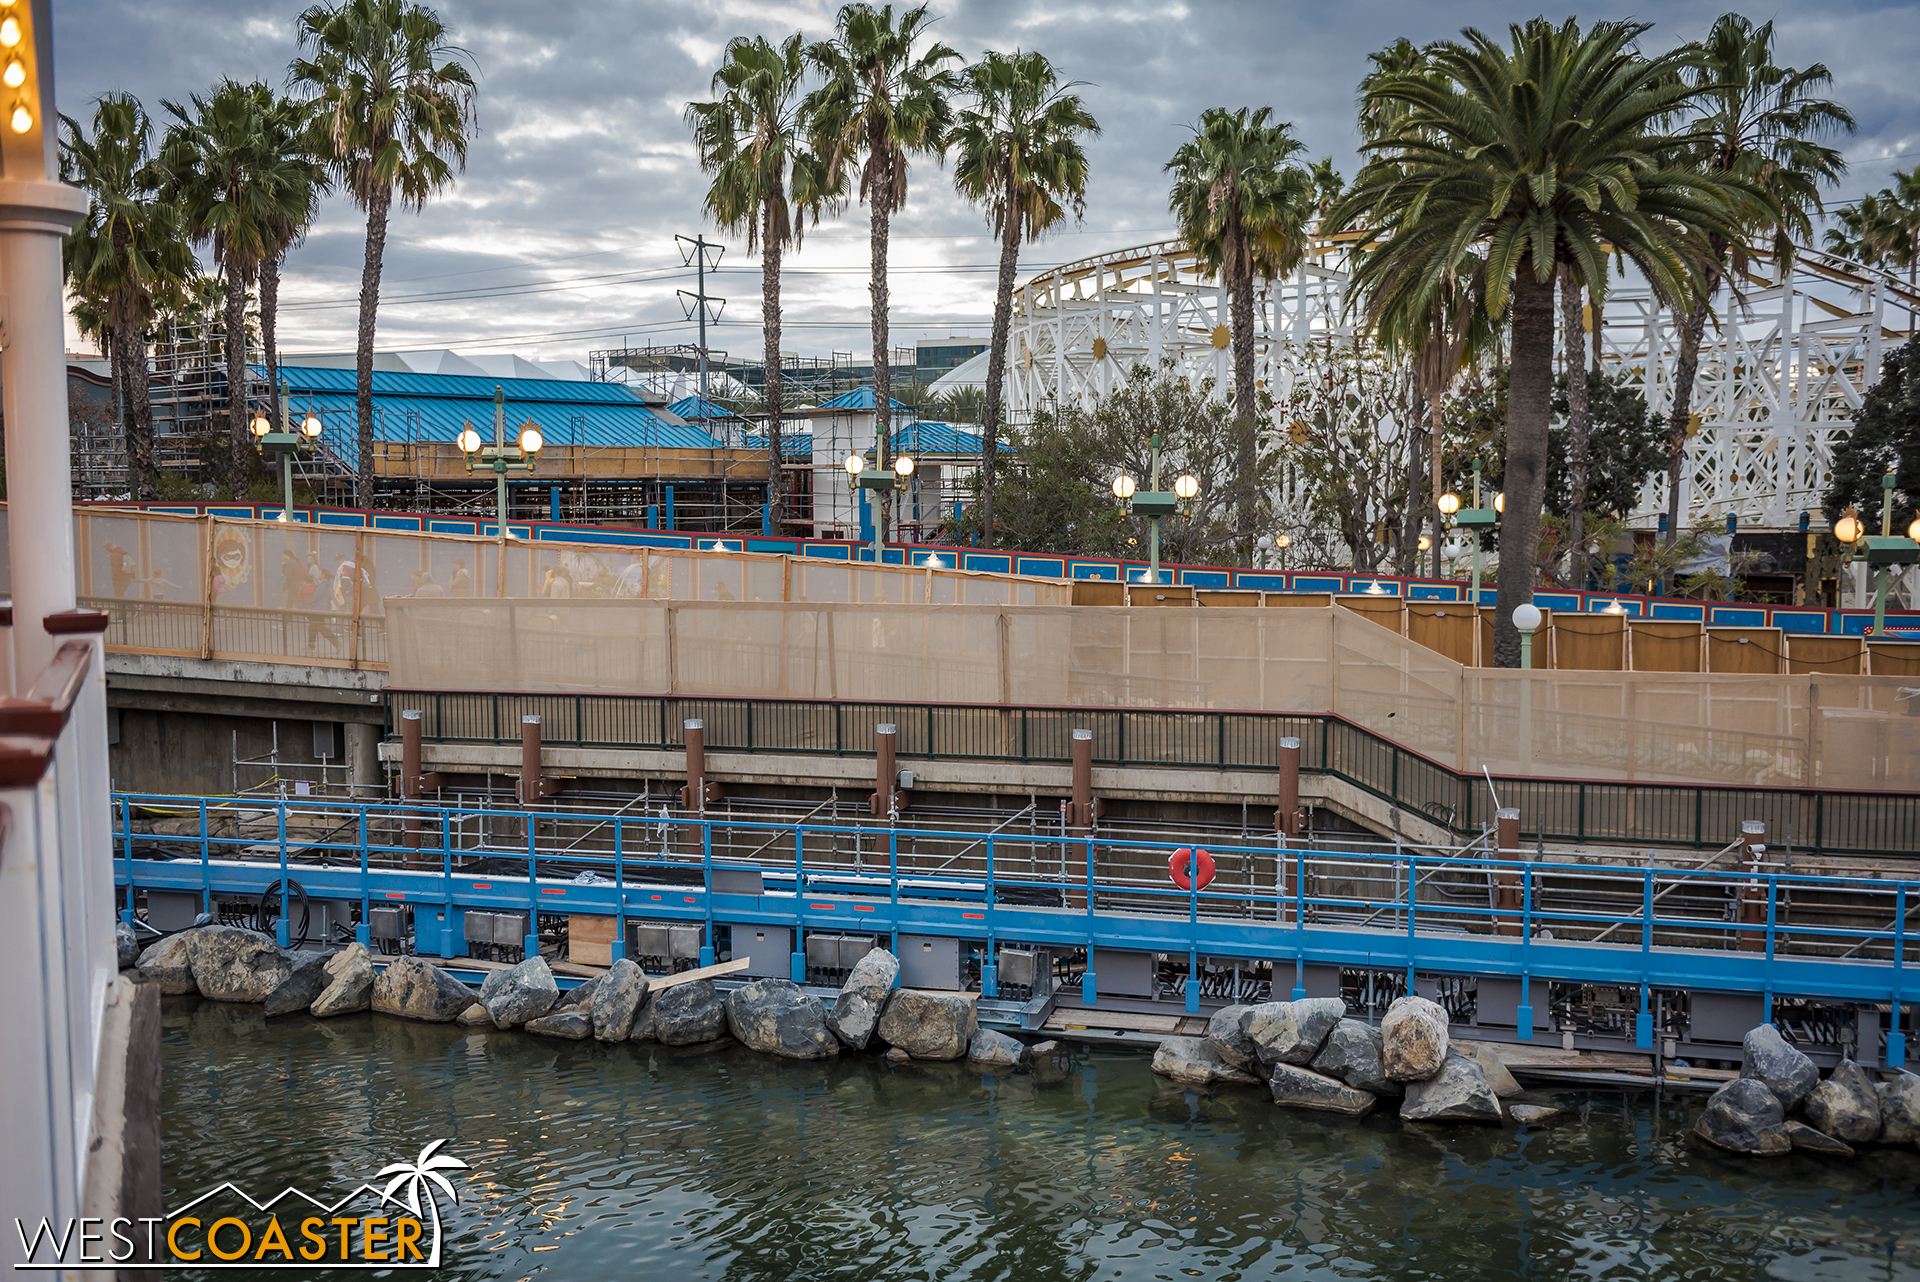 Also, here's this week's progress on the Incredicoaster station roof updating.